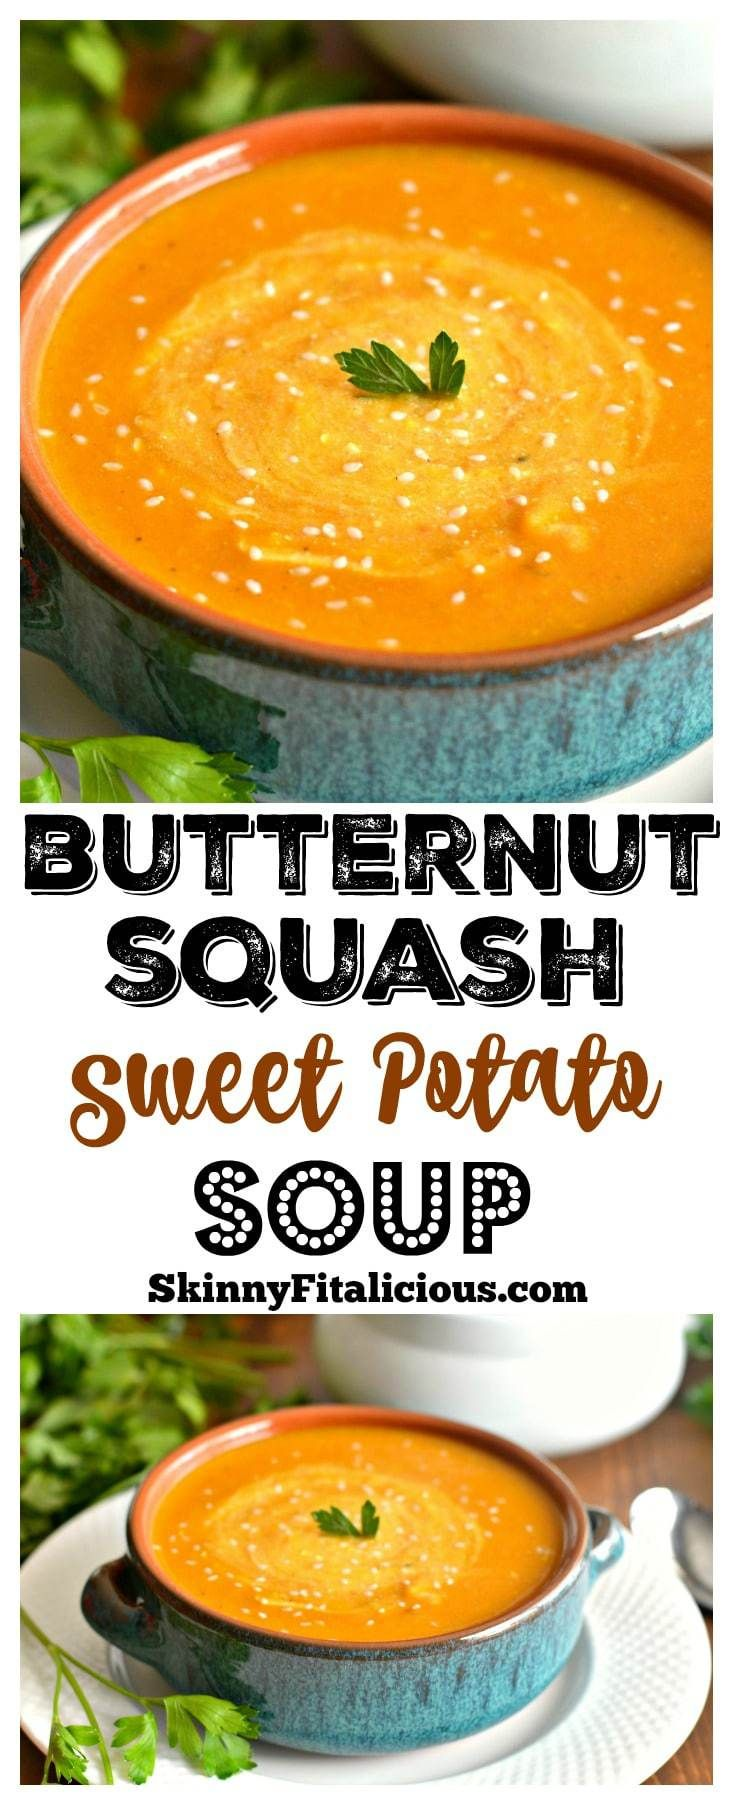 Nothing like a warm, comforting bowl ofveggie packed soup on a cold day. This nutritious Butternut Sweet Potato Soup is loaded with vitamins A & C. A healthy & delicious bowl that's gluten free, Paleo, low calorie & Vegan too!